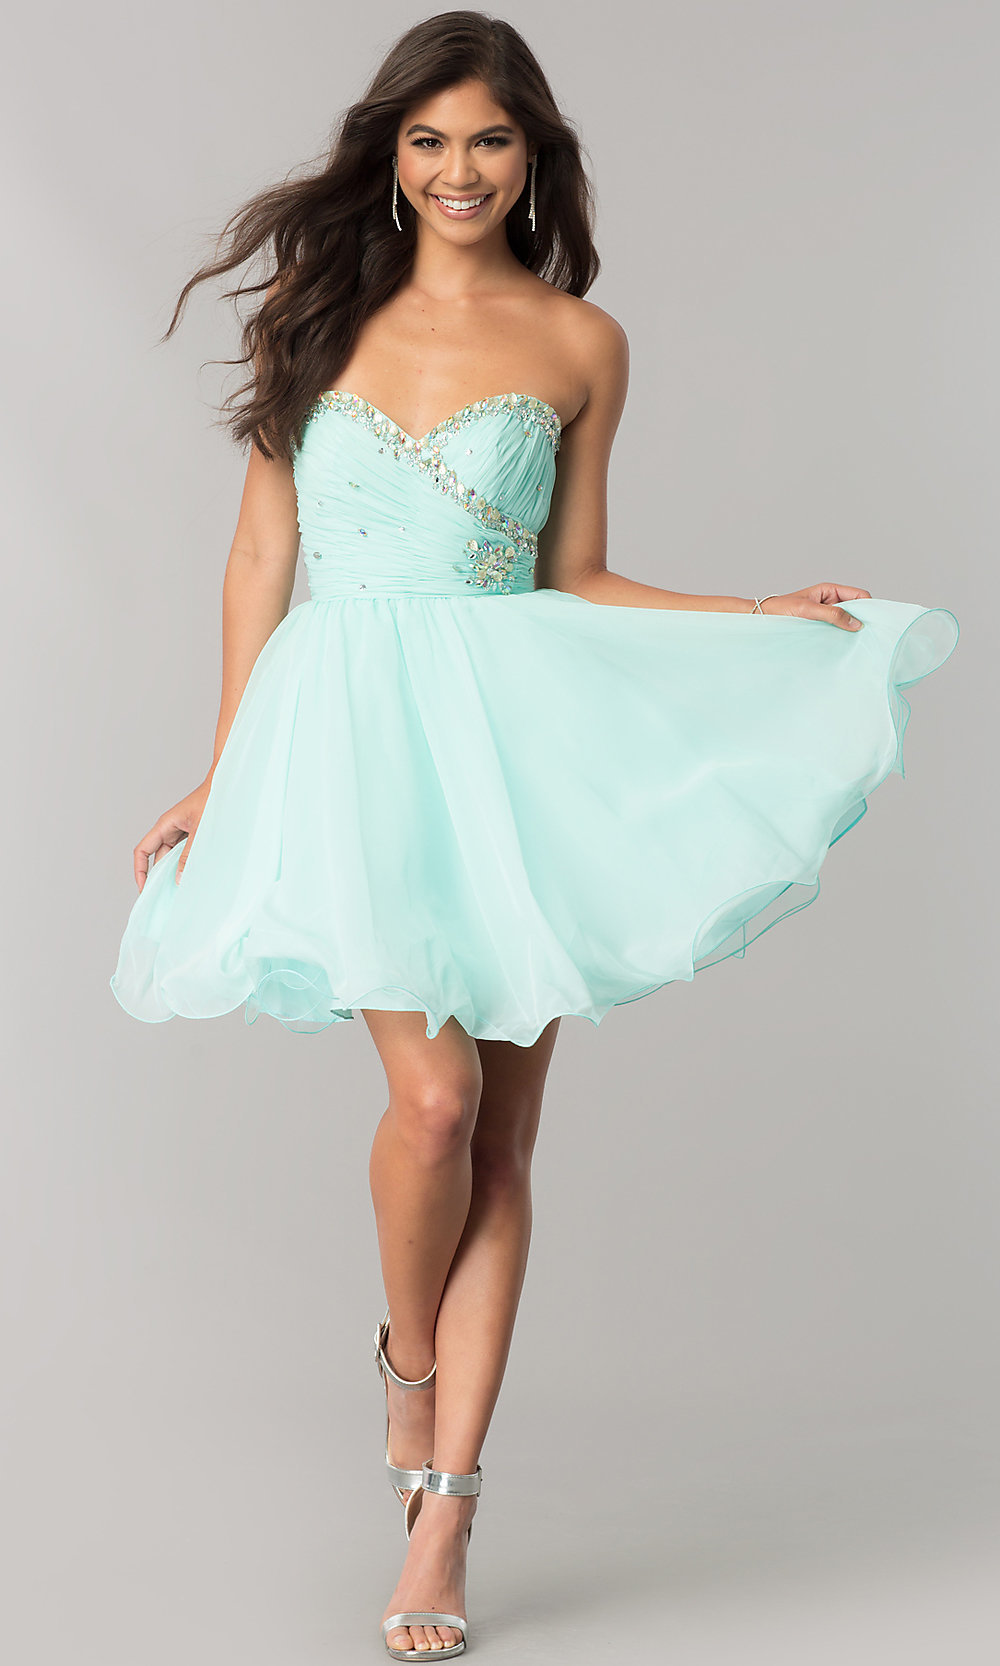 Short Strapless Prom Dresses Party Dresses Promgirl